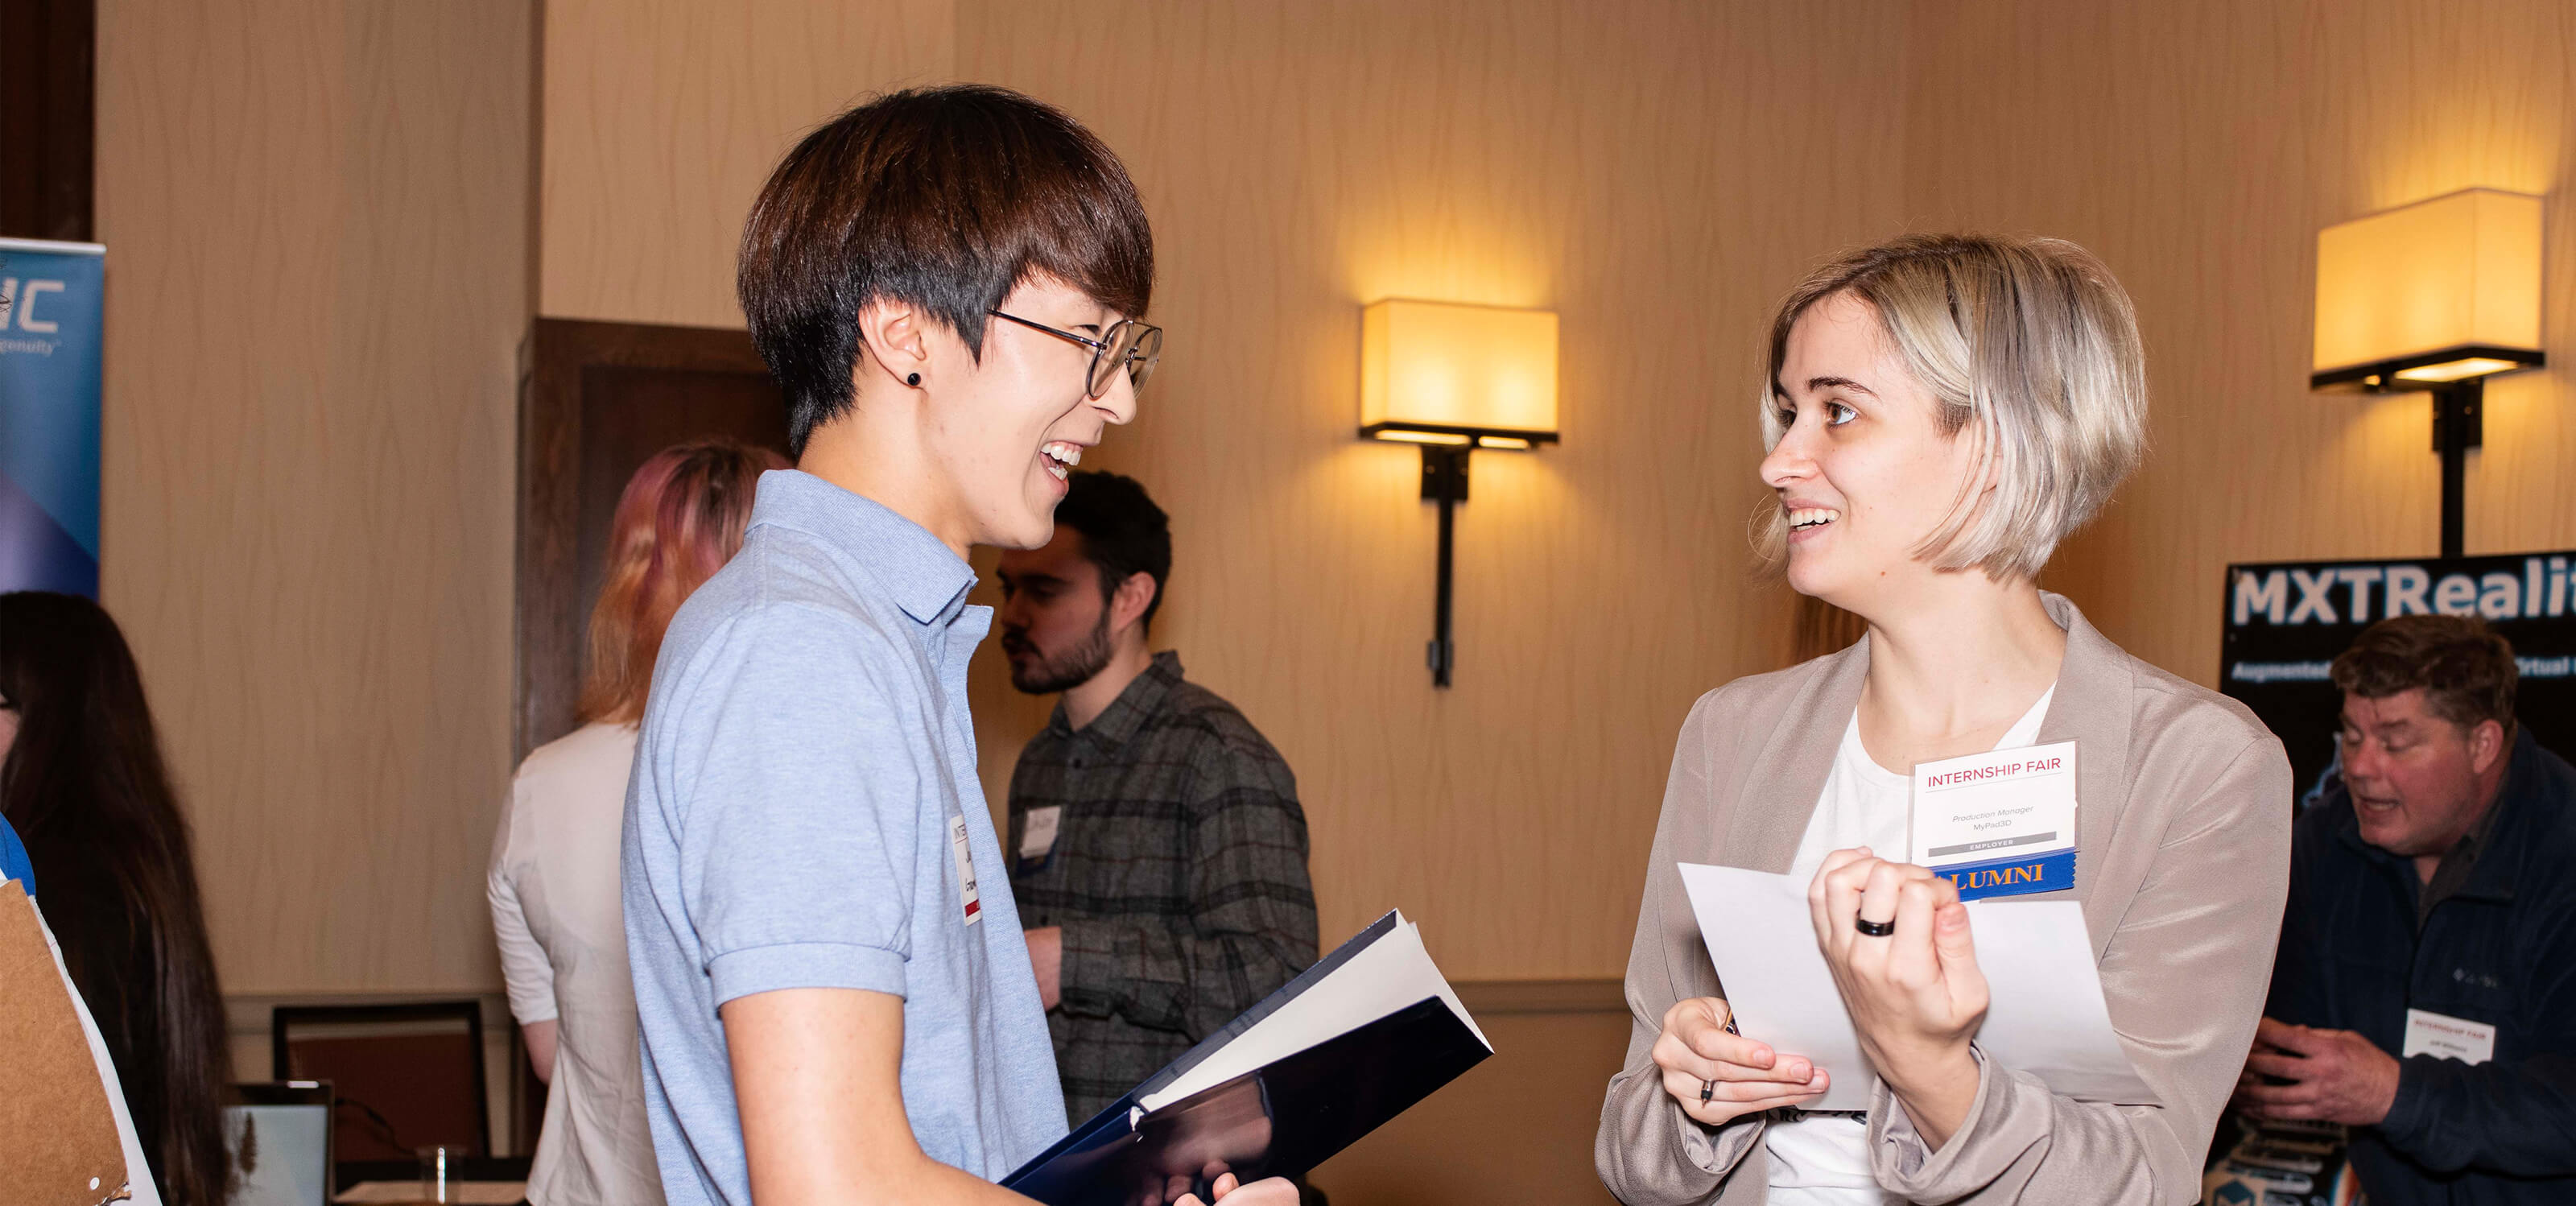 A company representative with an alumni tag chats with a current student at the 2019 Internship Fair.